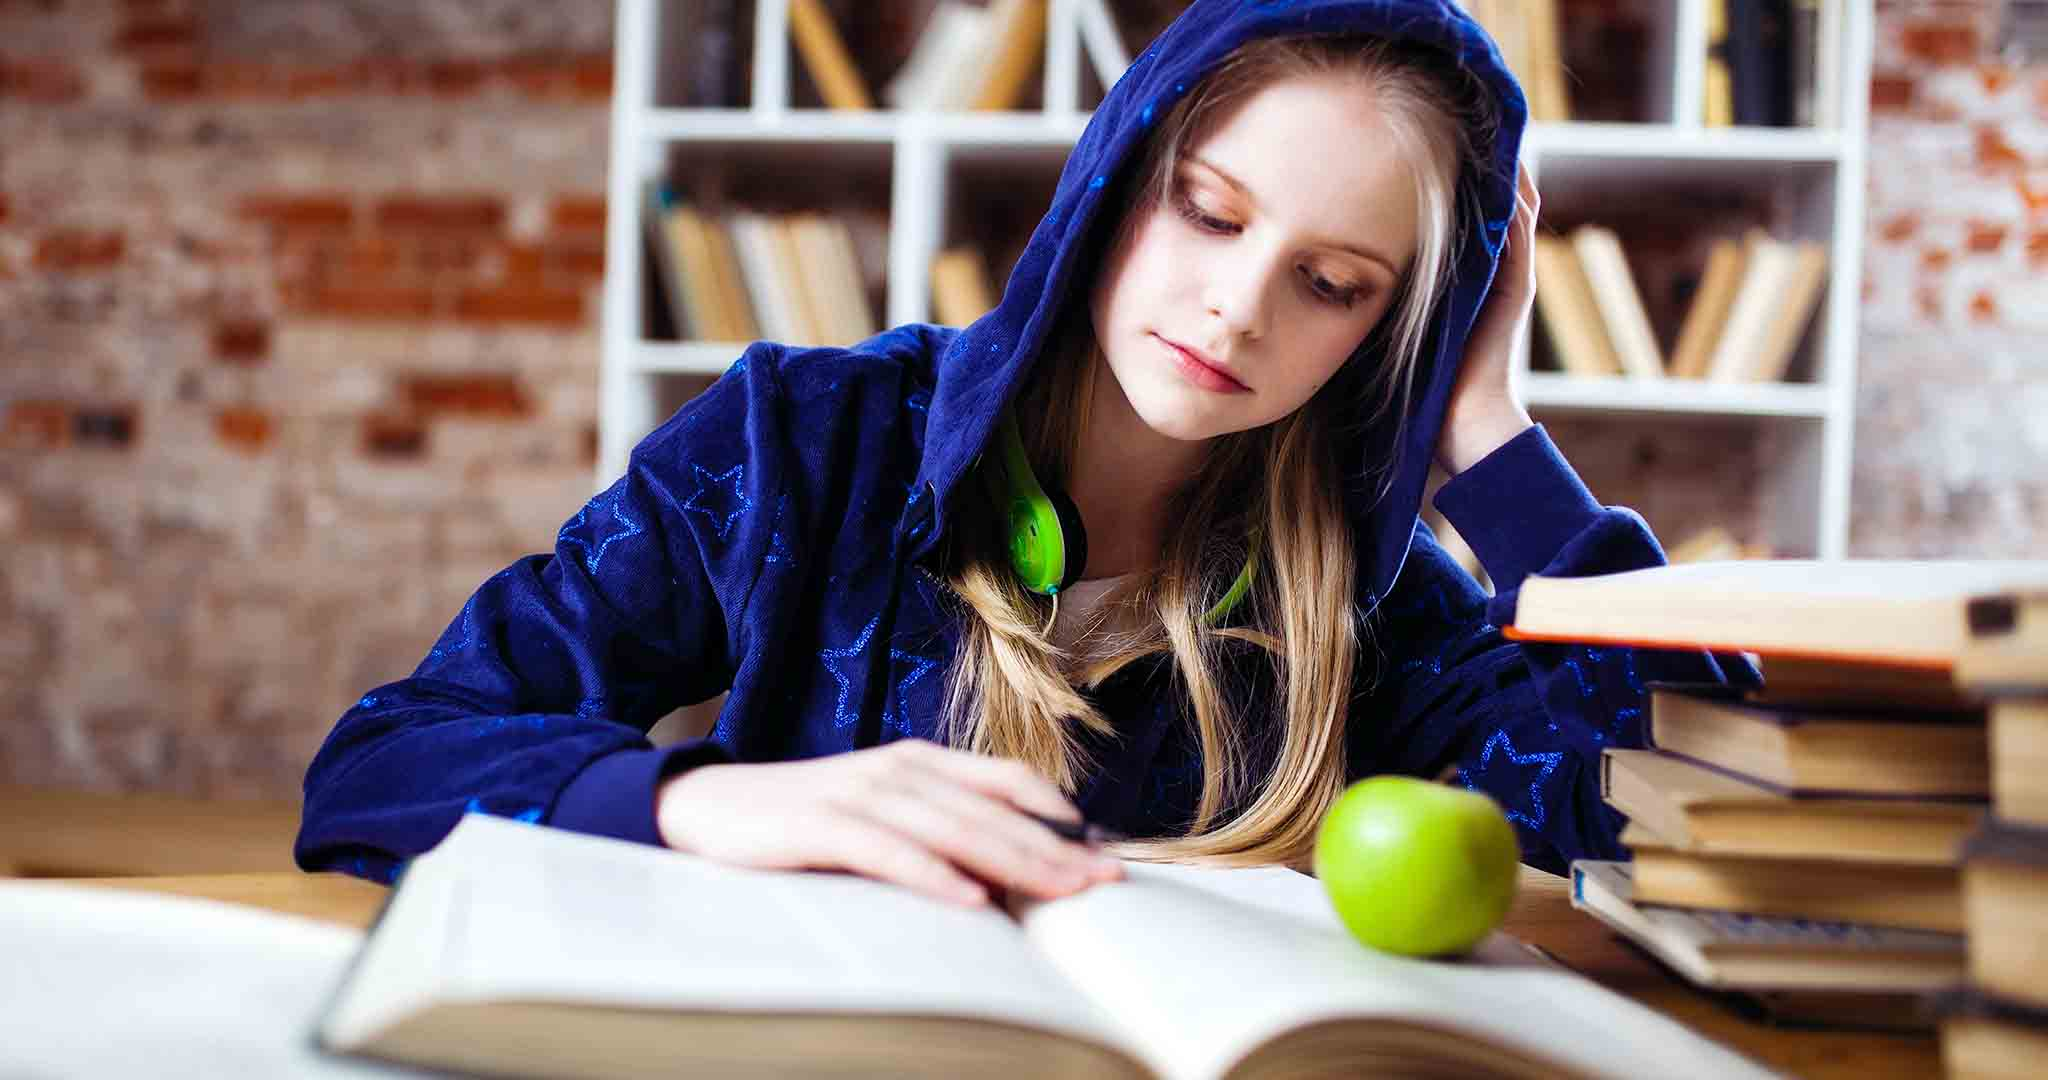 apple beautiful blond hair student college stock photography